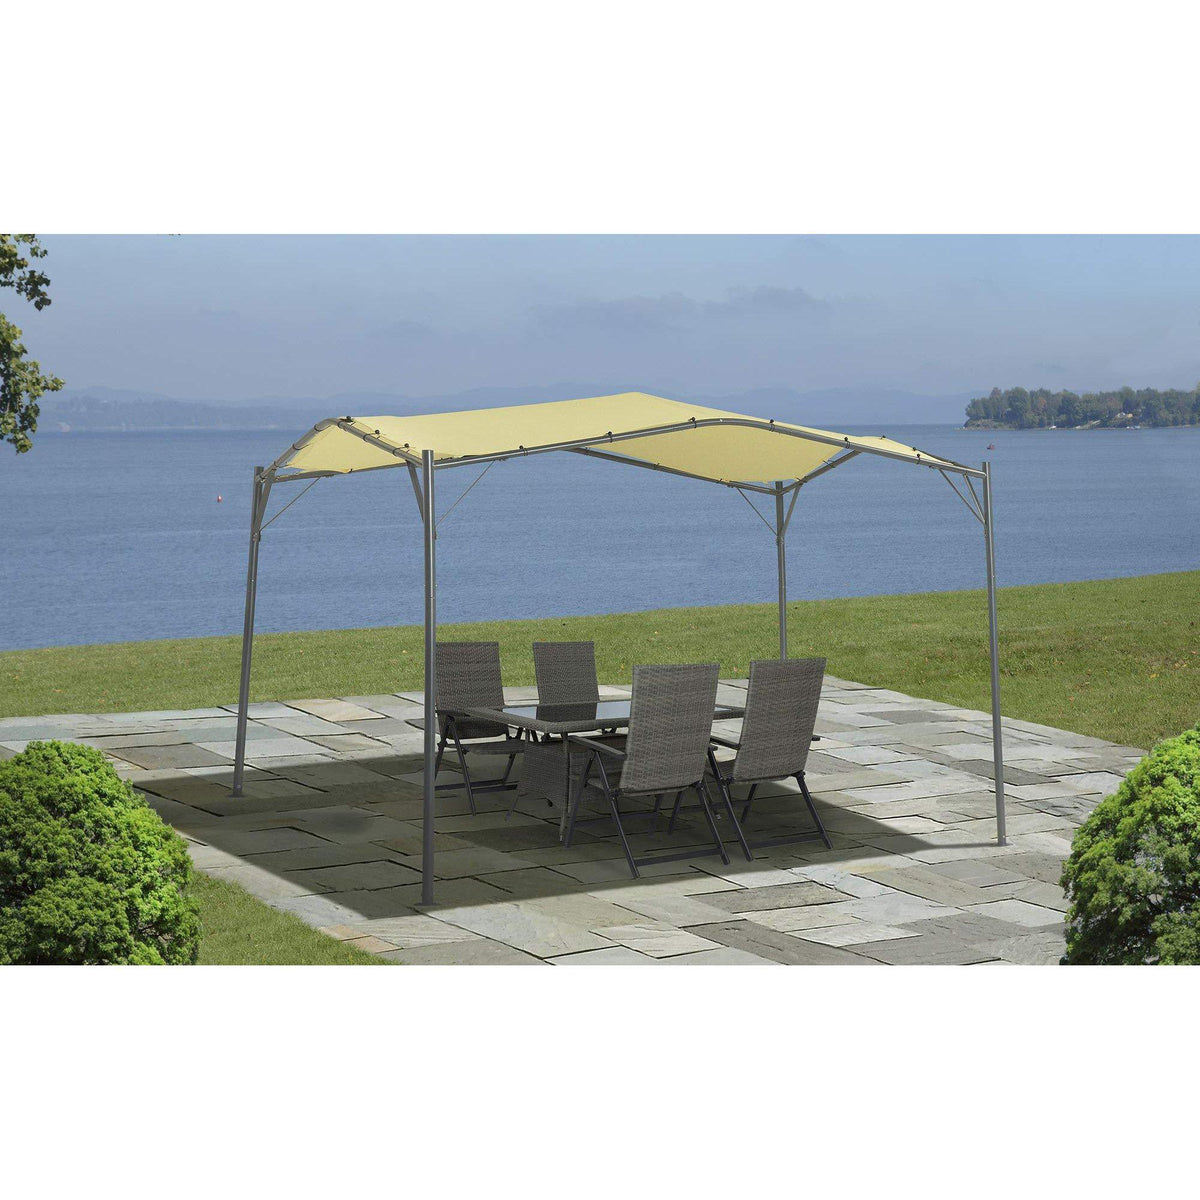 ShelterLogic Gazebo Series Monterey 12 x 12-Foot Easy Assembly Portable UV Protection Outdoor Canopy, Cream